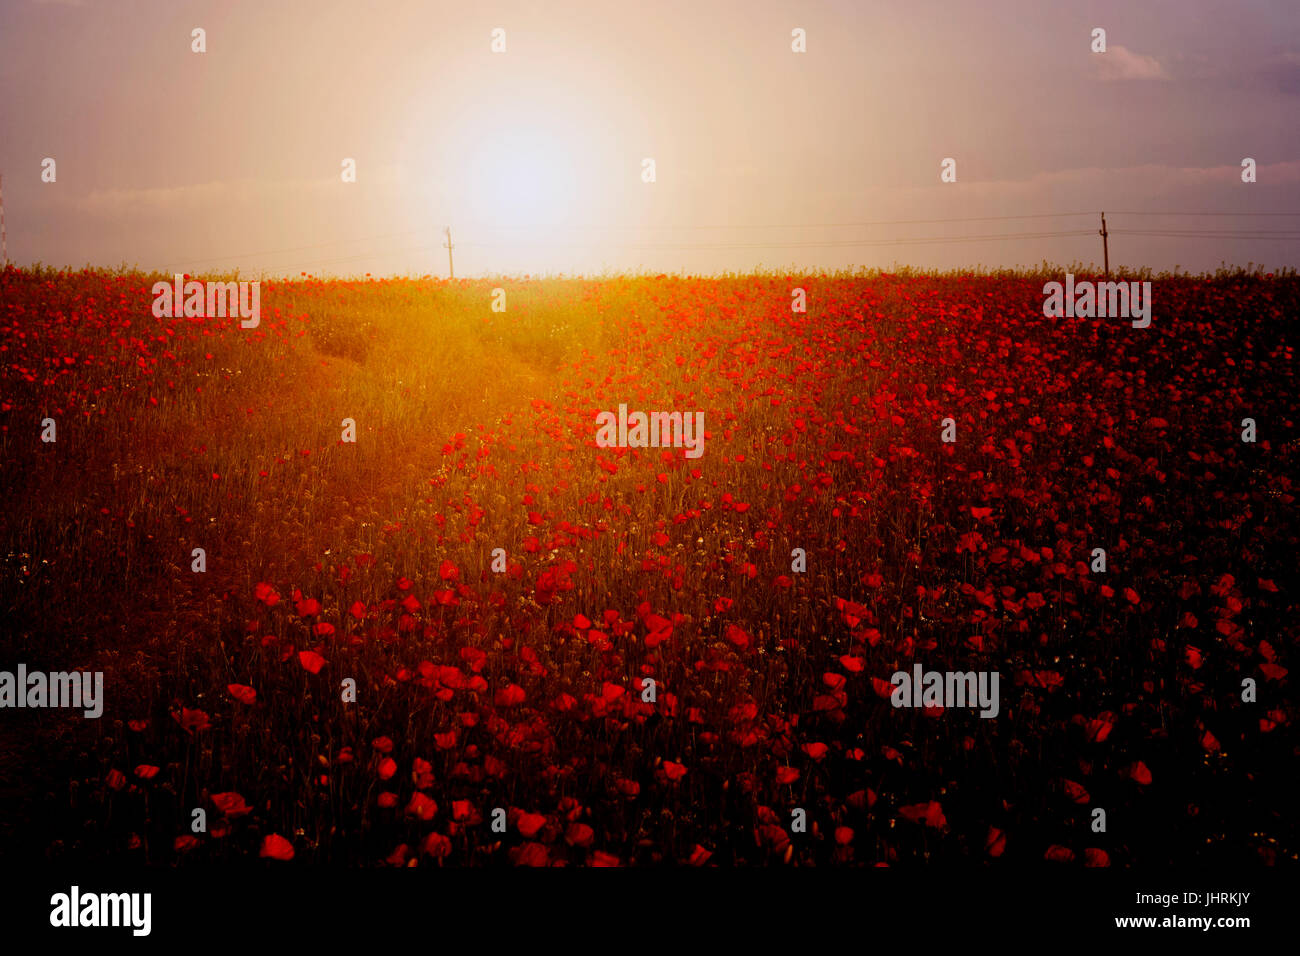 Poppy field in sunset - Stock Image